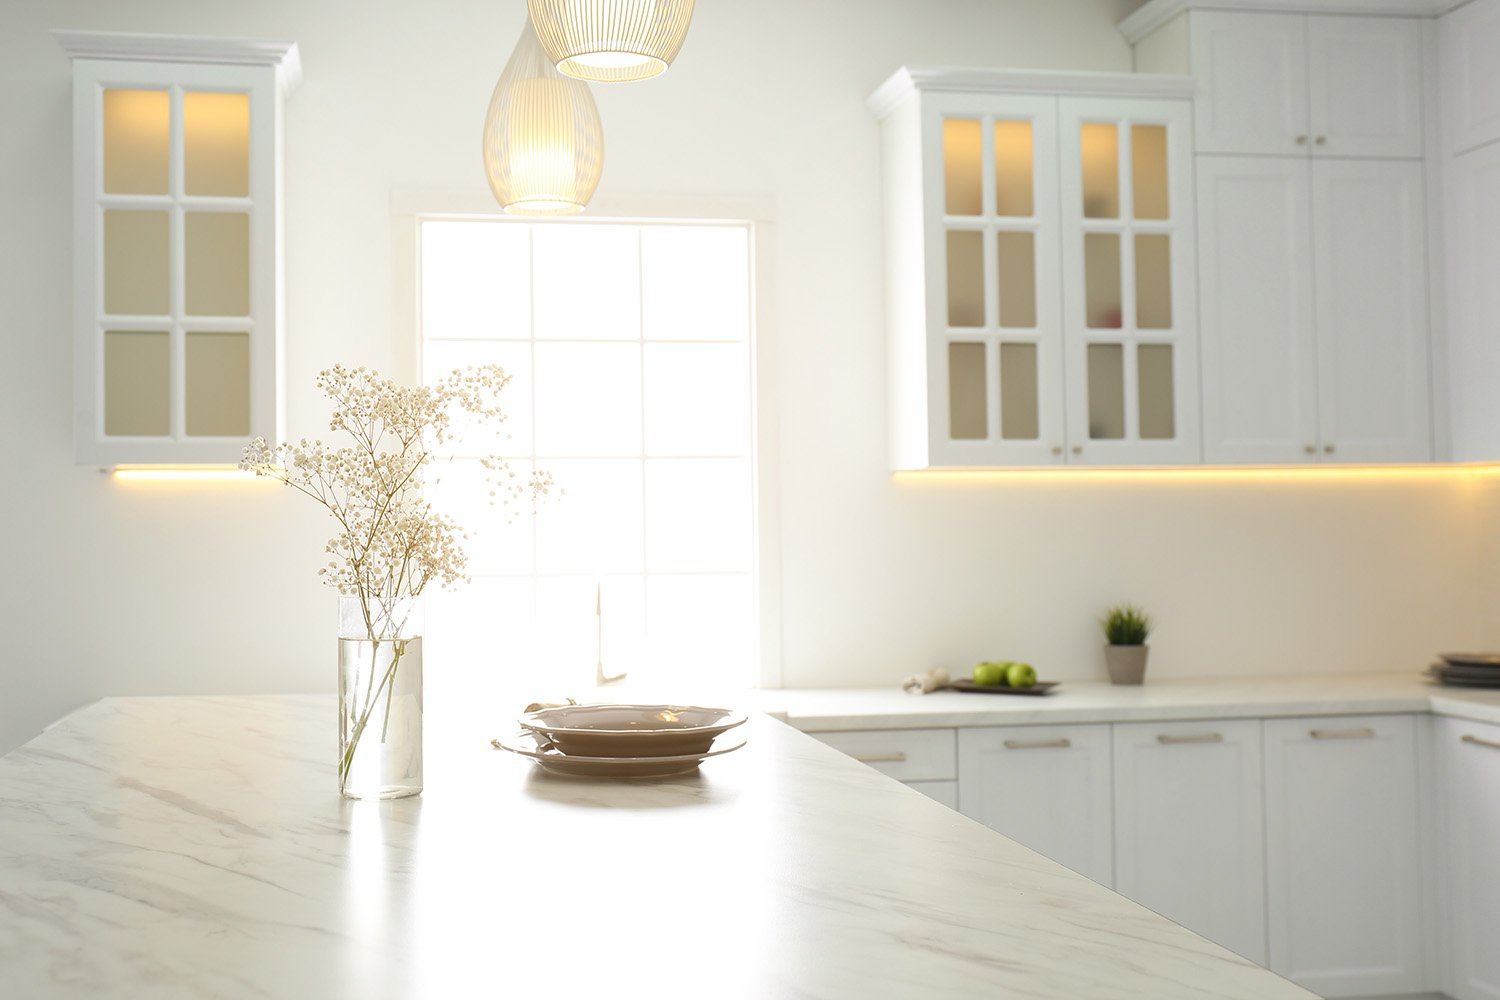 sun coming through window in newly remodeled kitchen